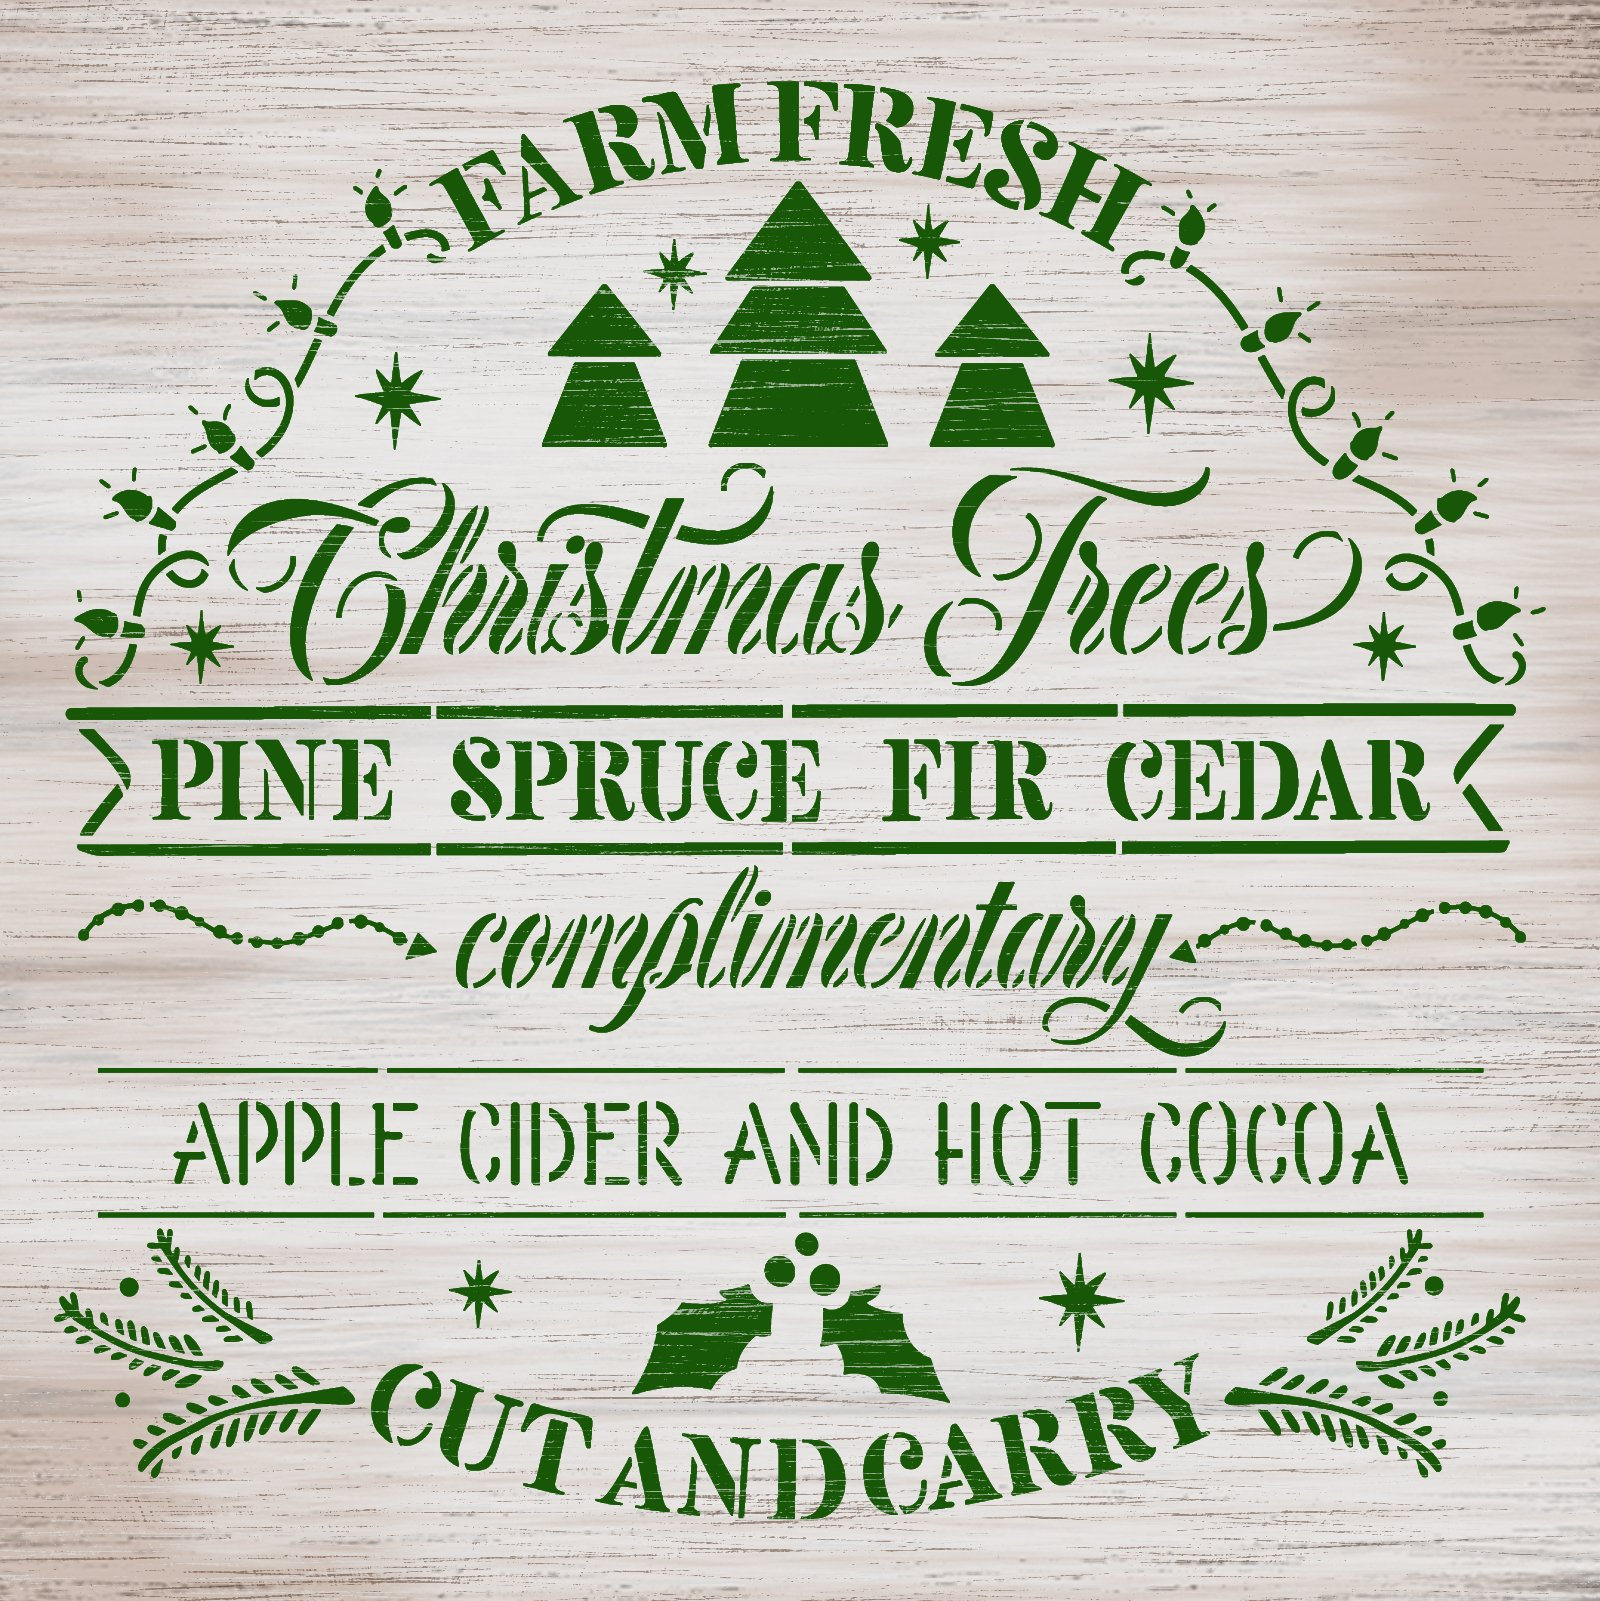 Farm Fresh Christmas Trees Stencil by StudioR12 | DIY Holiday Home Decor | Craft & Paint Winter Wood Sign | Reusable Mylar Template | Select Size